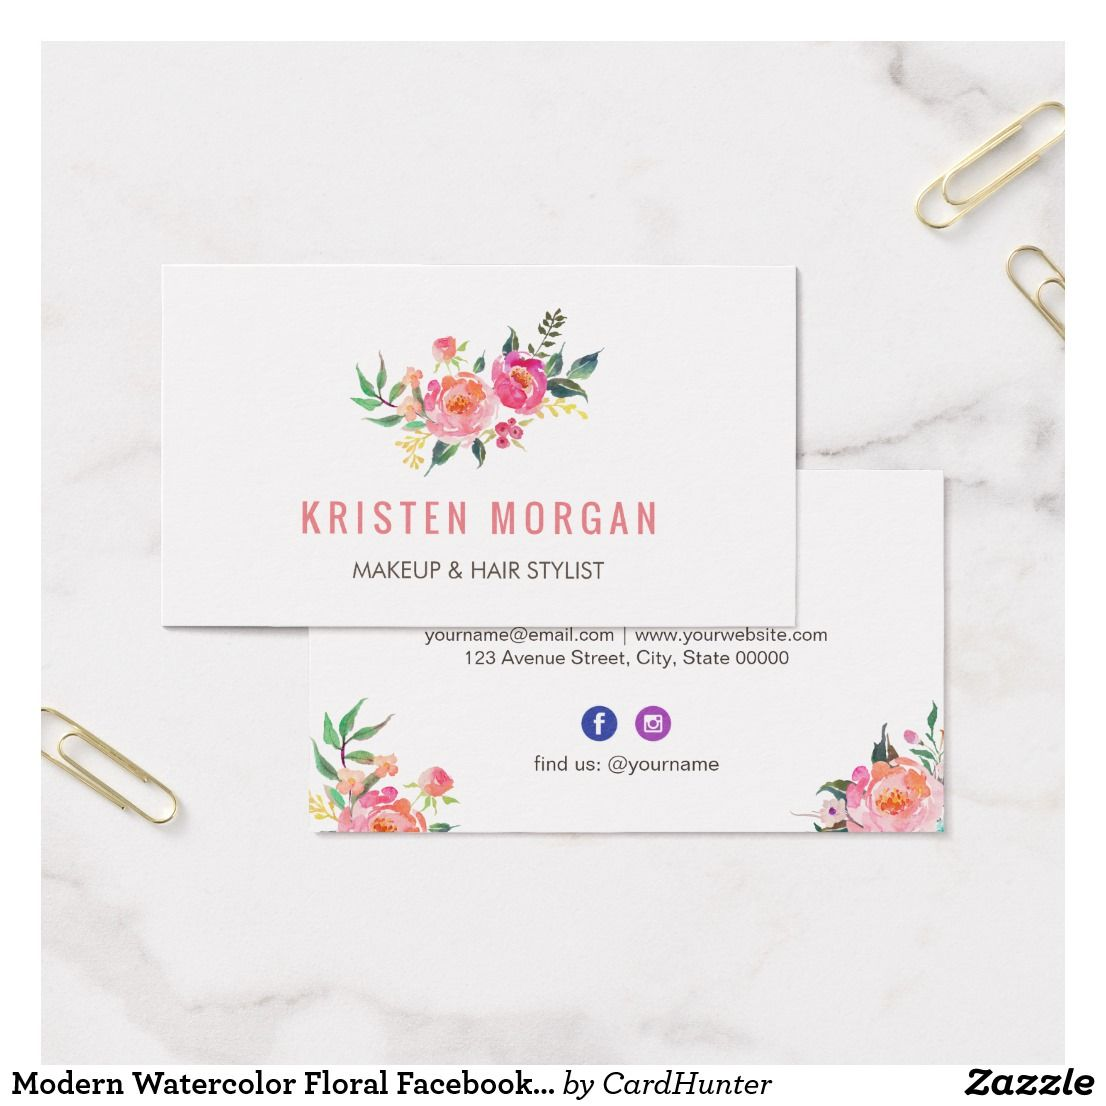 Modern watercolor floral facebook instagram icon business card modern watercolor floral facebook instagram icon business card reheart Choice Image